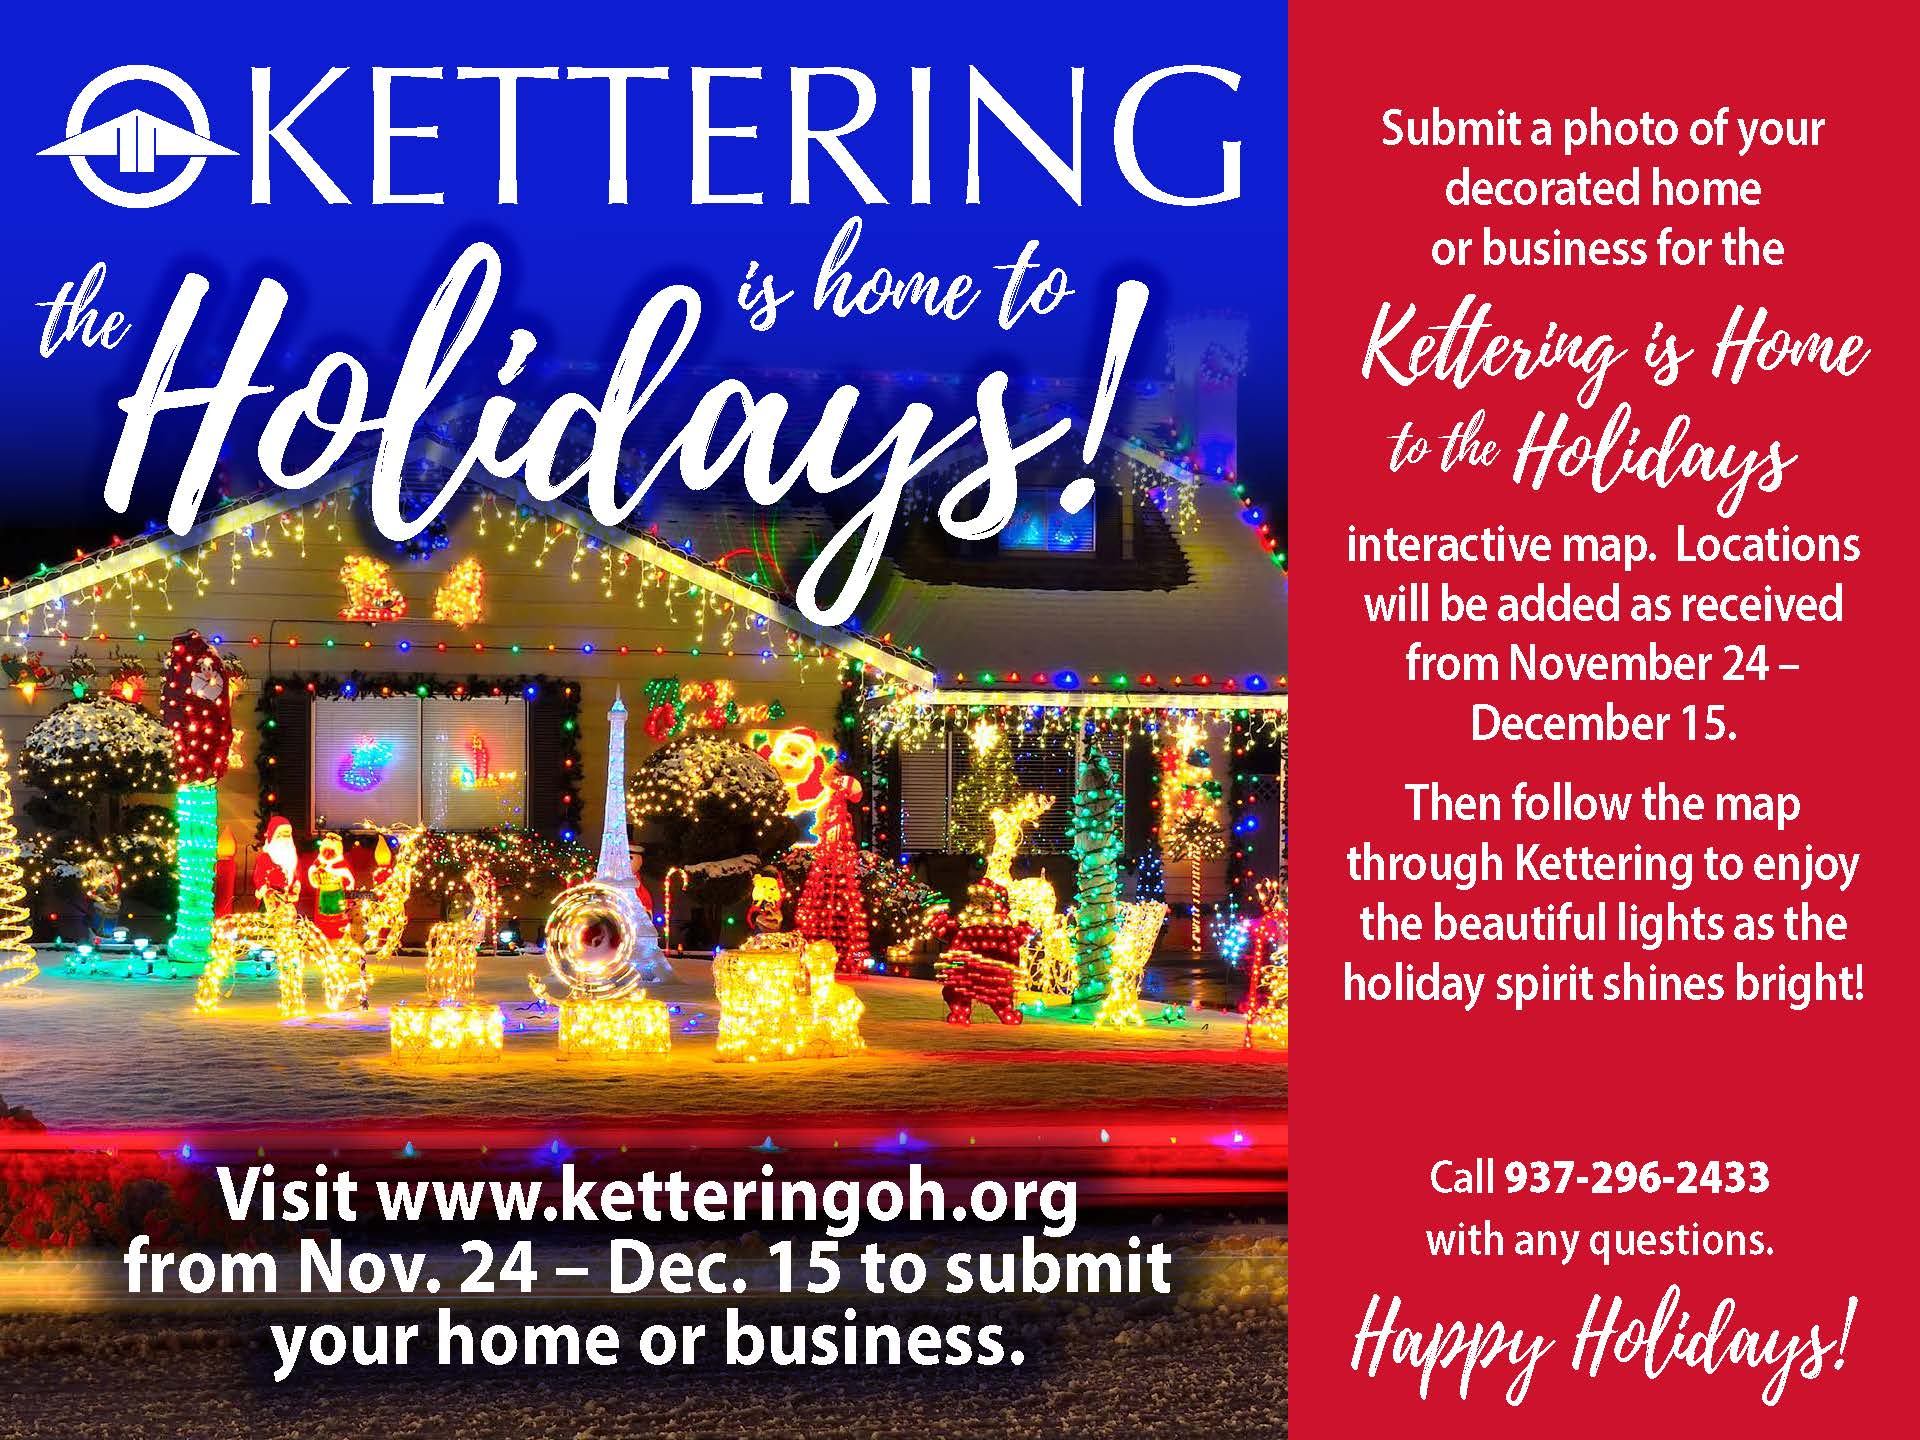 Kettering is Home to the Holidays